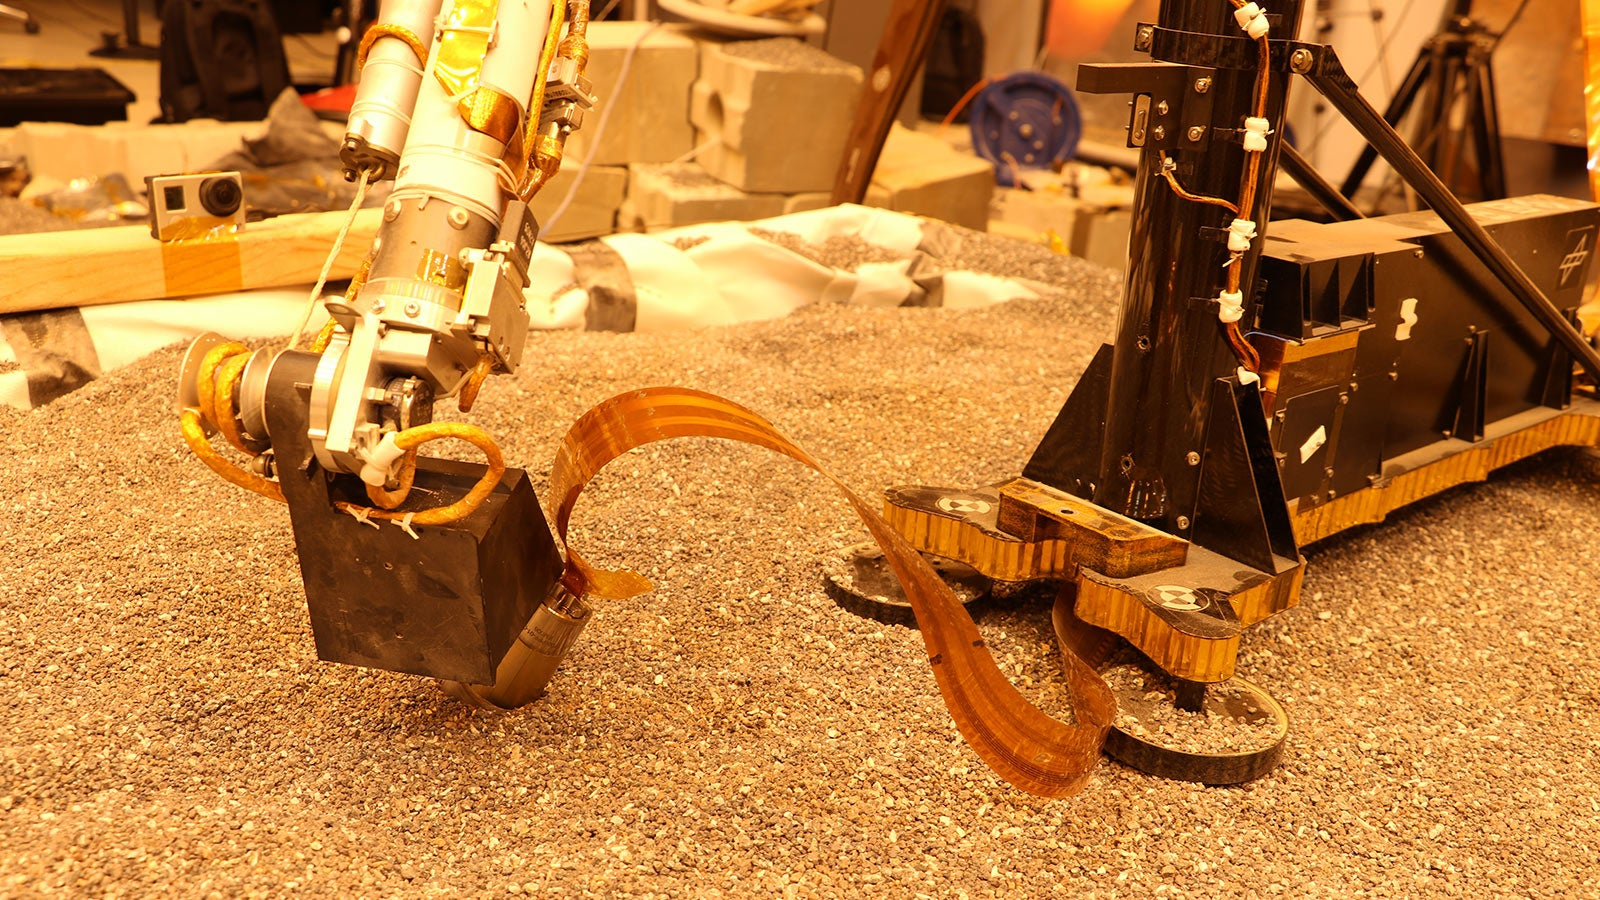 And Now For Some Good News: The InSight Heat Flow Probe Is Digging Again